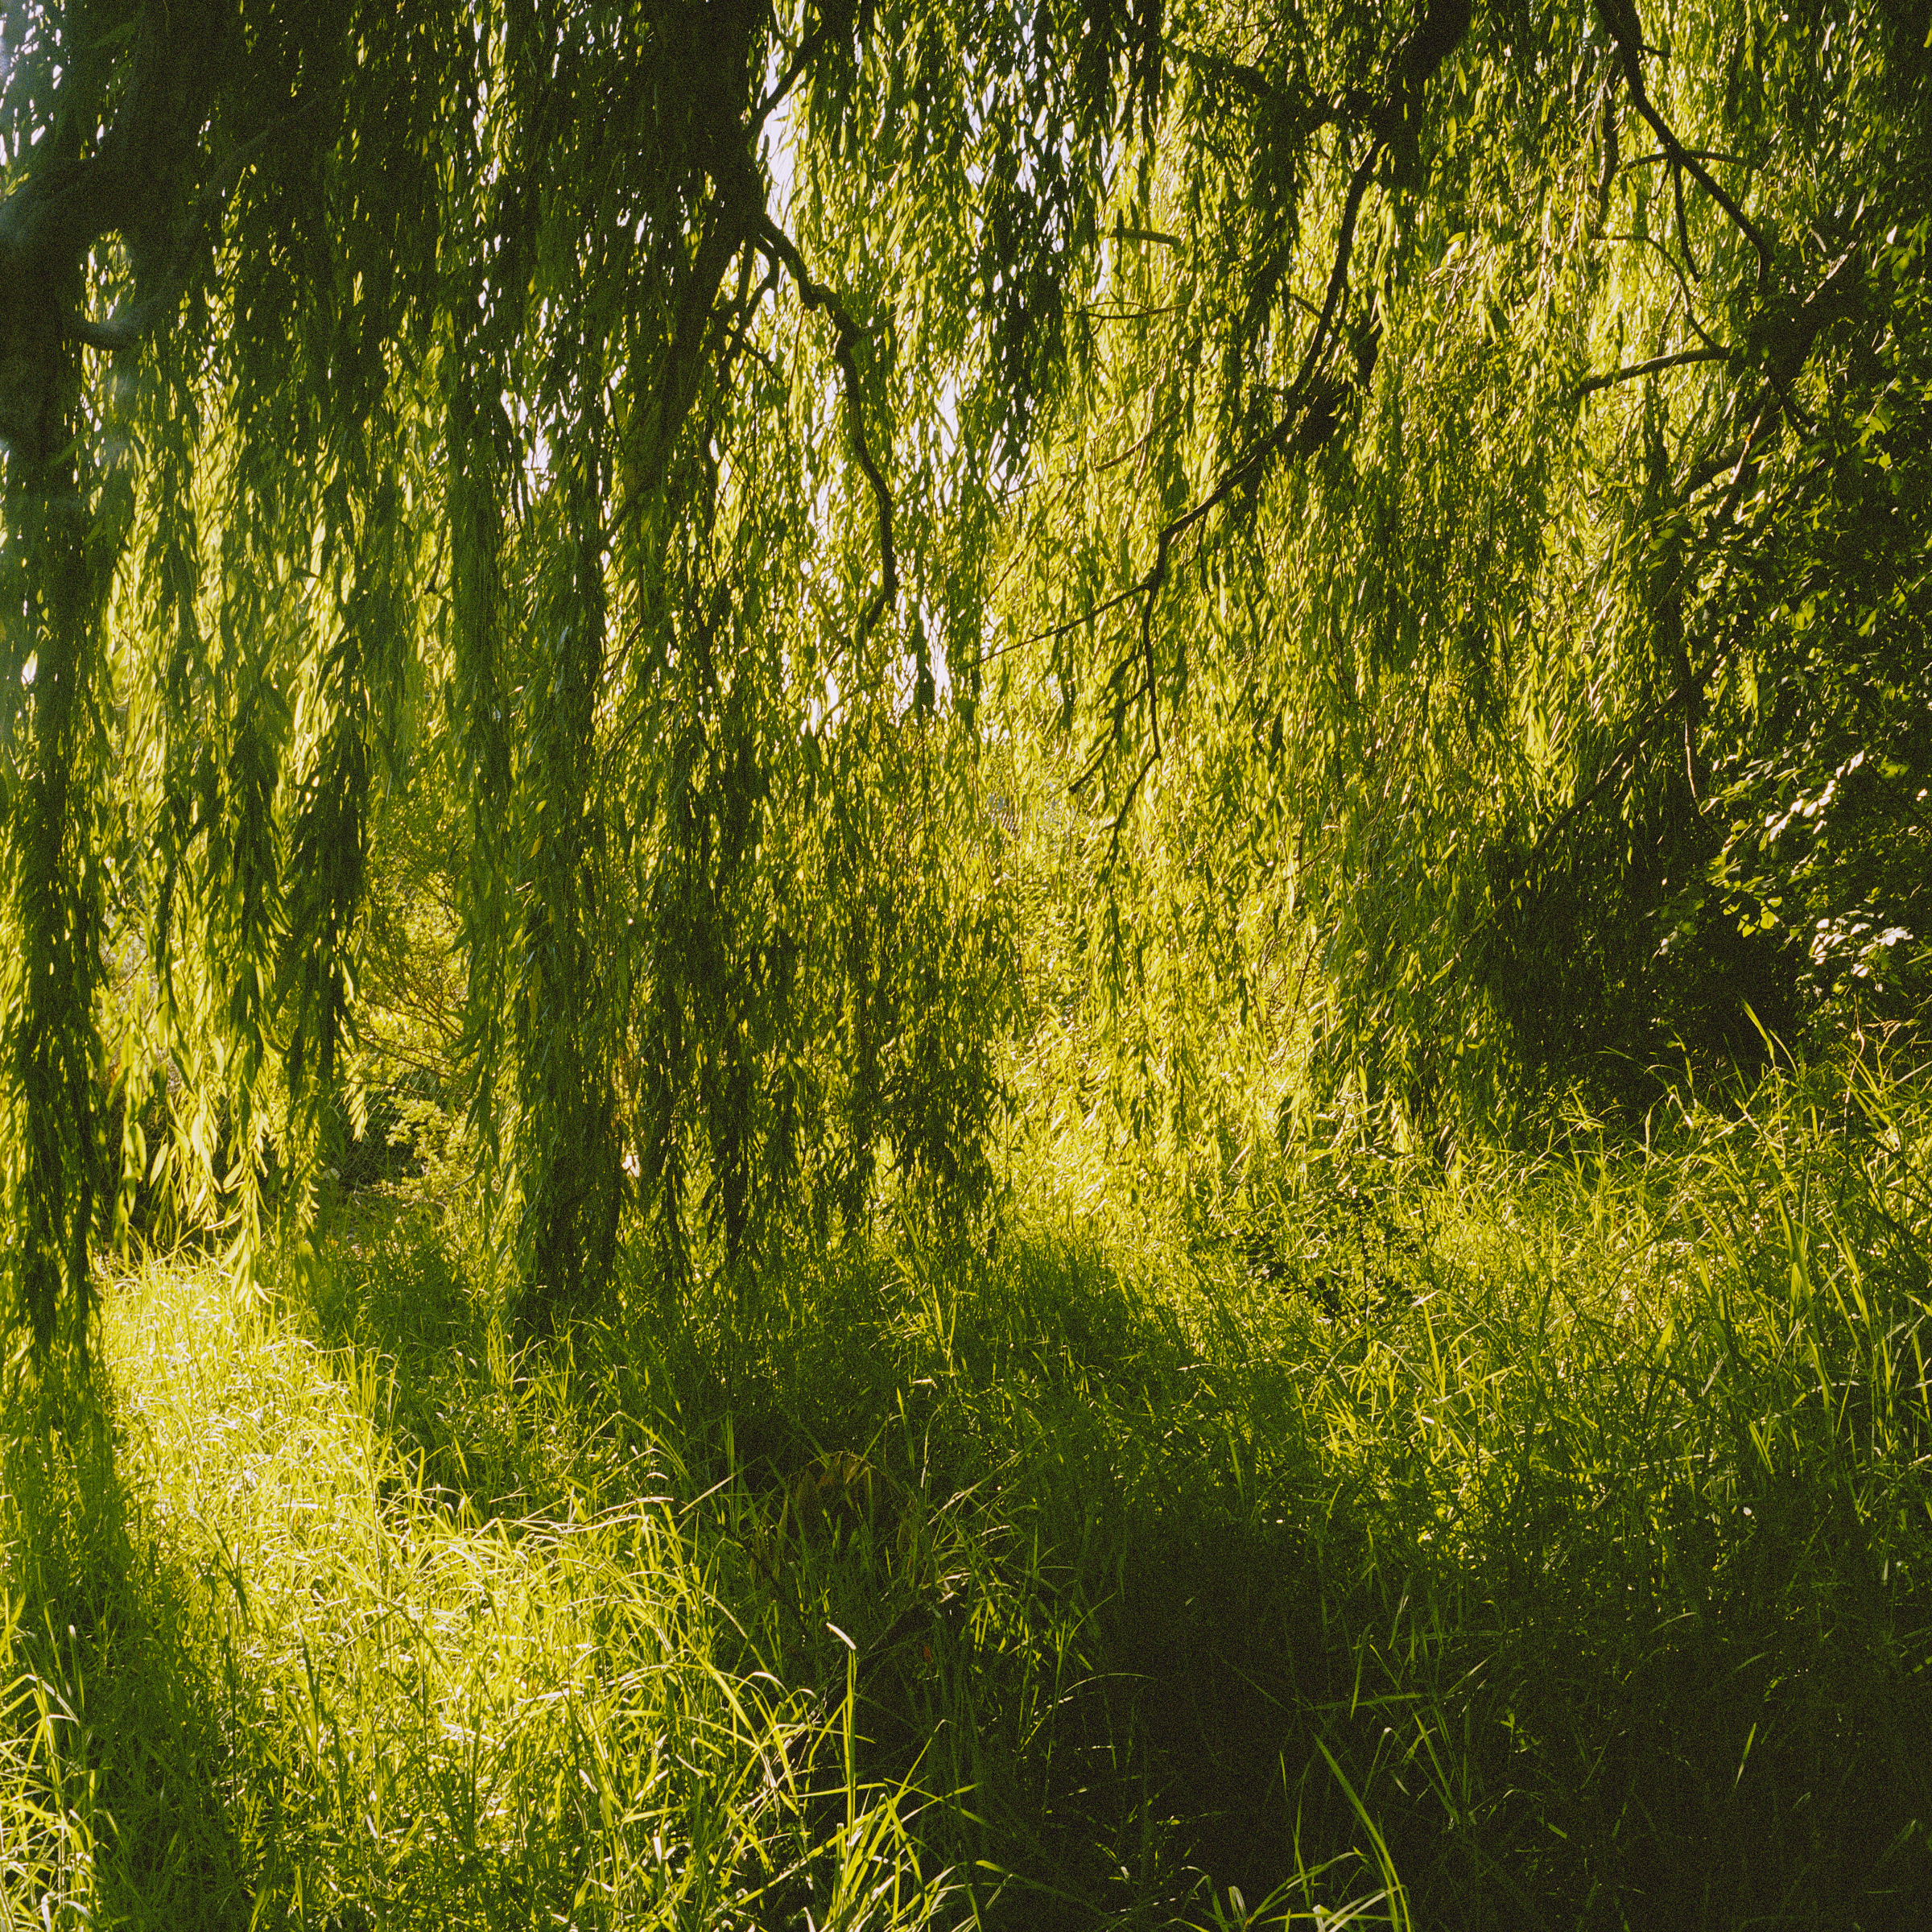 Under the Weeping Willow (2009)